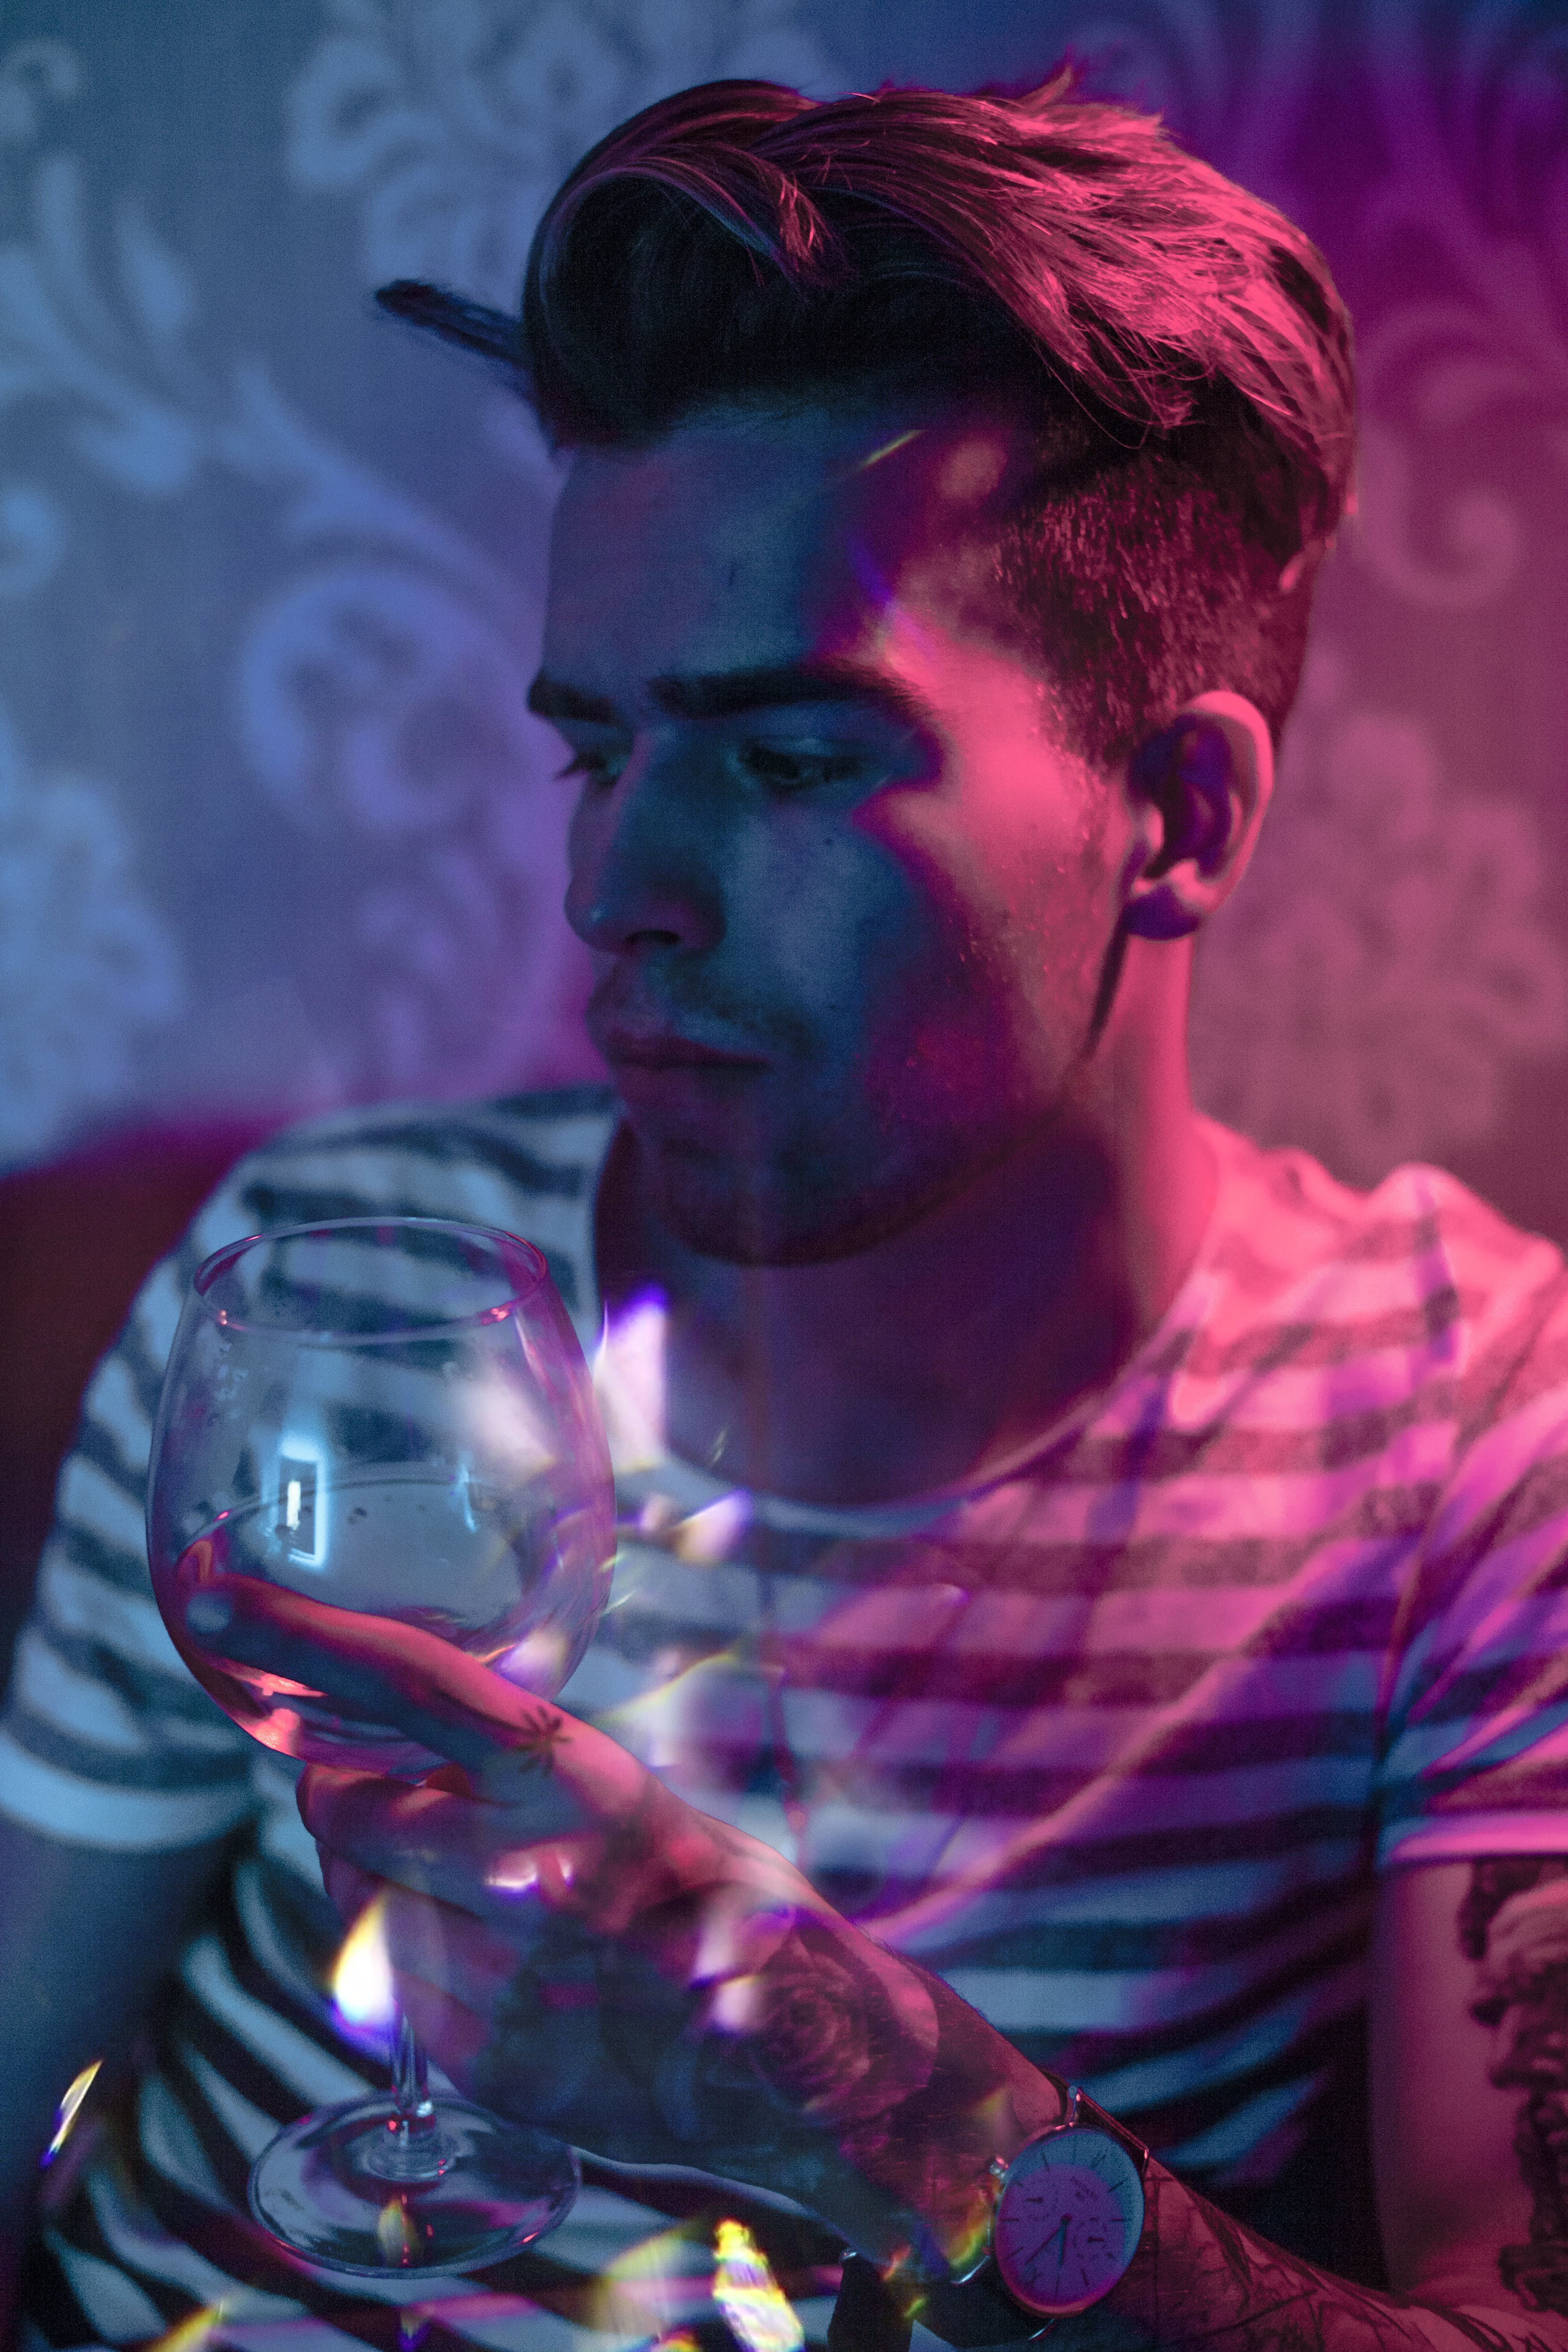 Photography of Man Holding Wine Glass